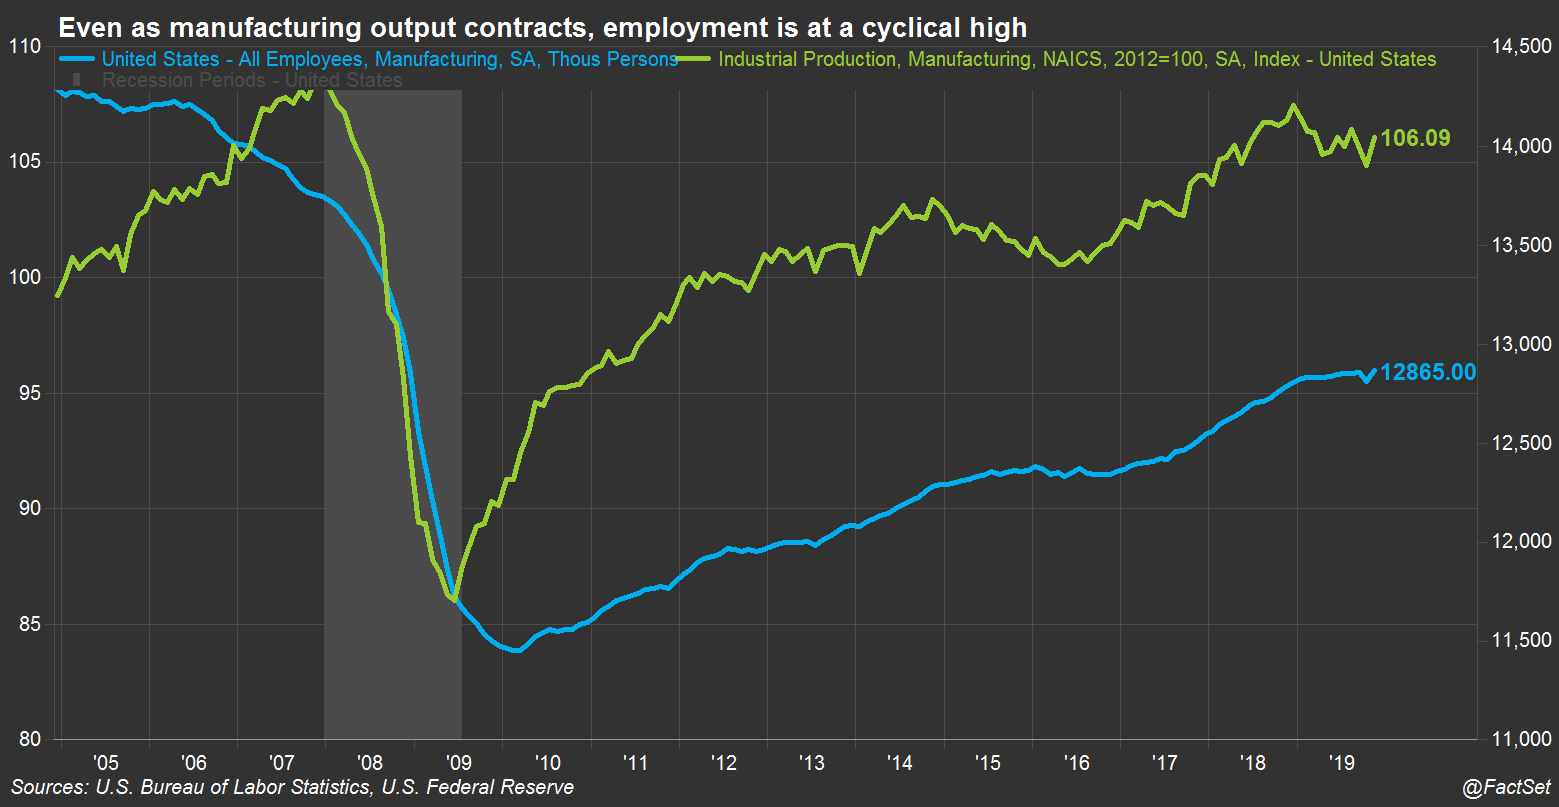 Even as mfg output contracts emp at a cyclical high